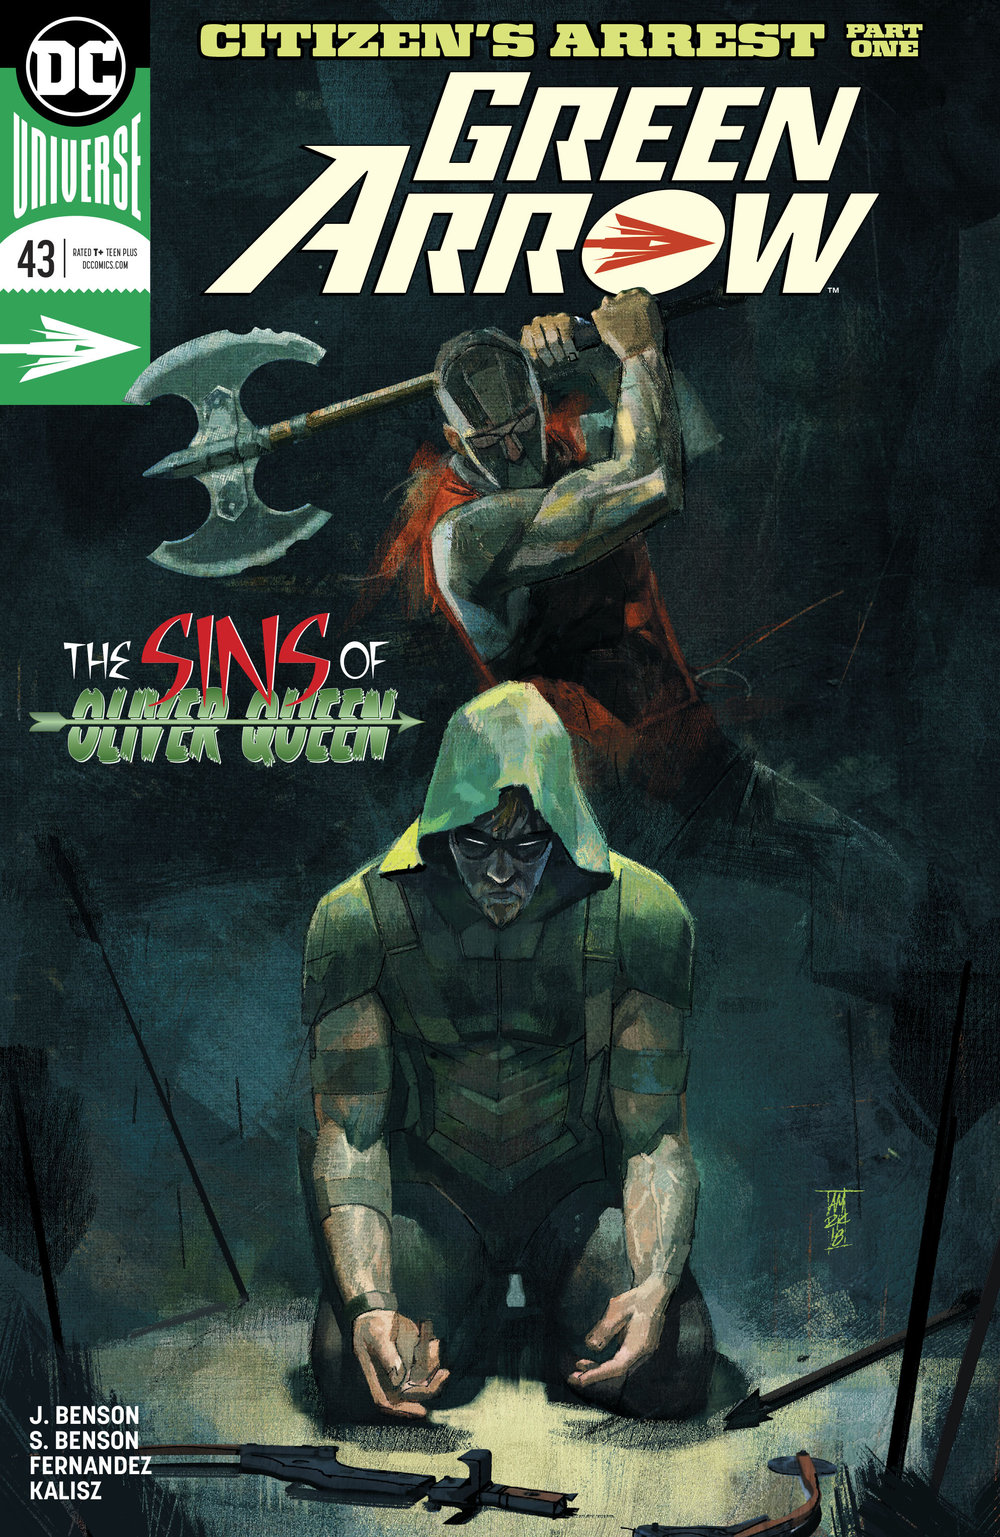 As a long-time  Green Arrow  fan, I am absolutely freaking out about Alex Maleev doing covers for this book.